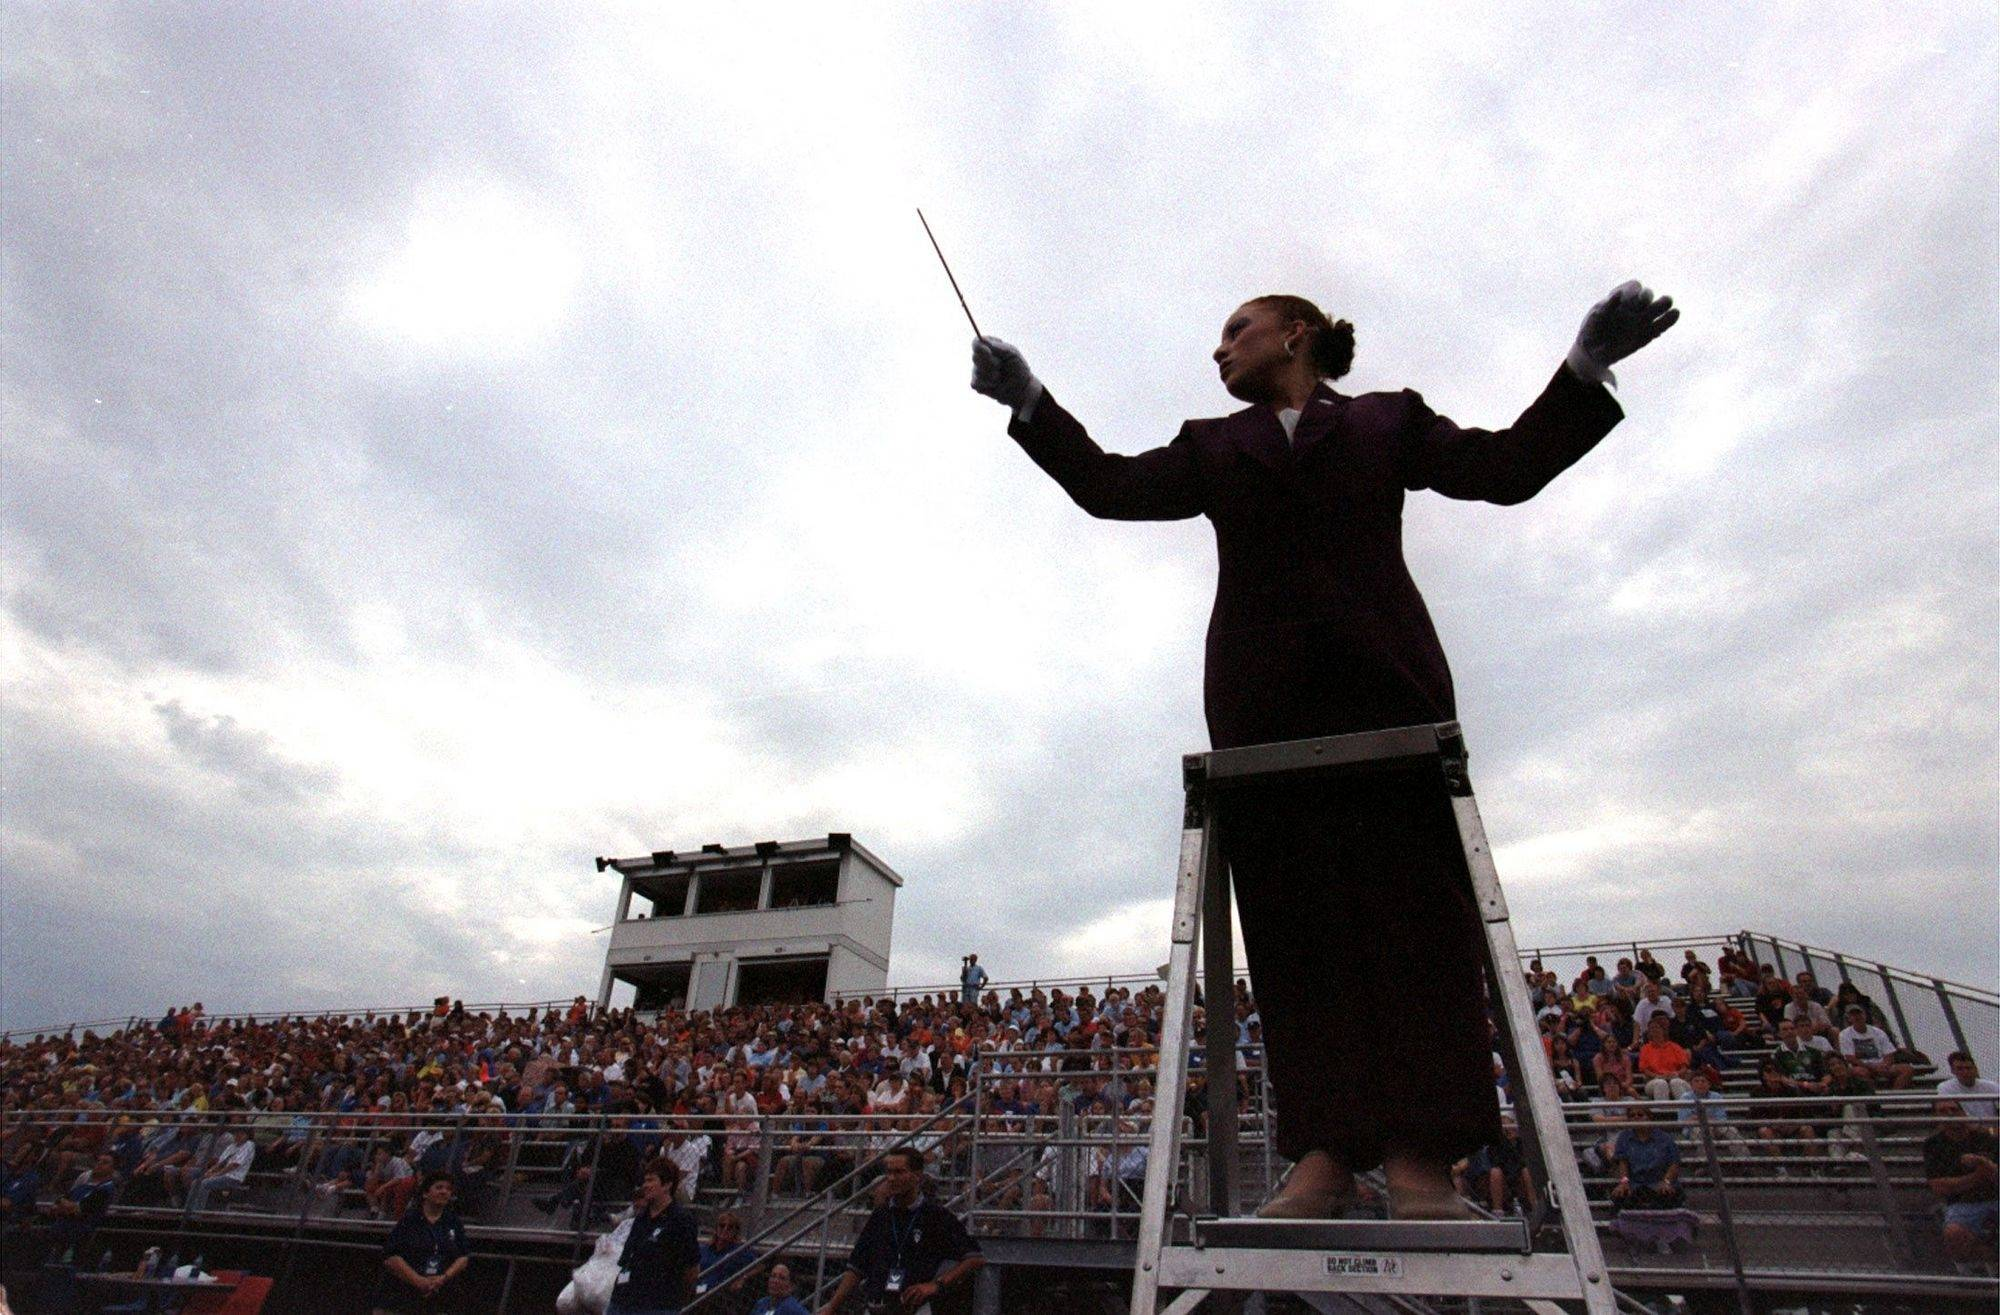 Lake Park High School's Joust Marching Band Competition returns to the school's West Campus on Saturday, Sept. 11, to showcase more than 20 bands from throughout the Midwest.